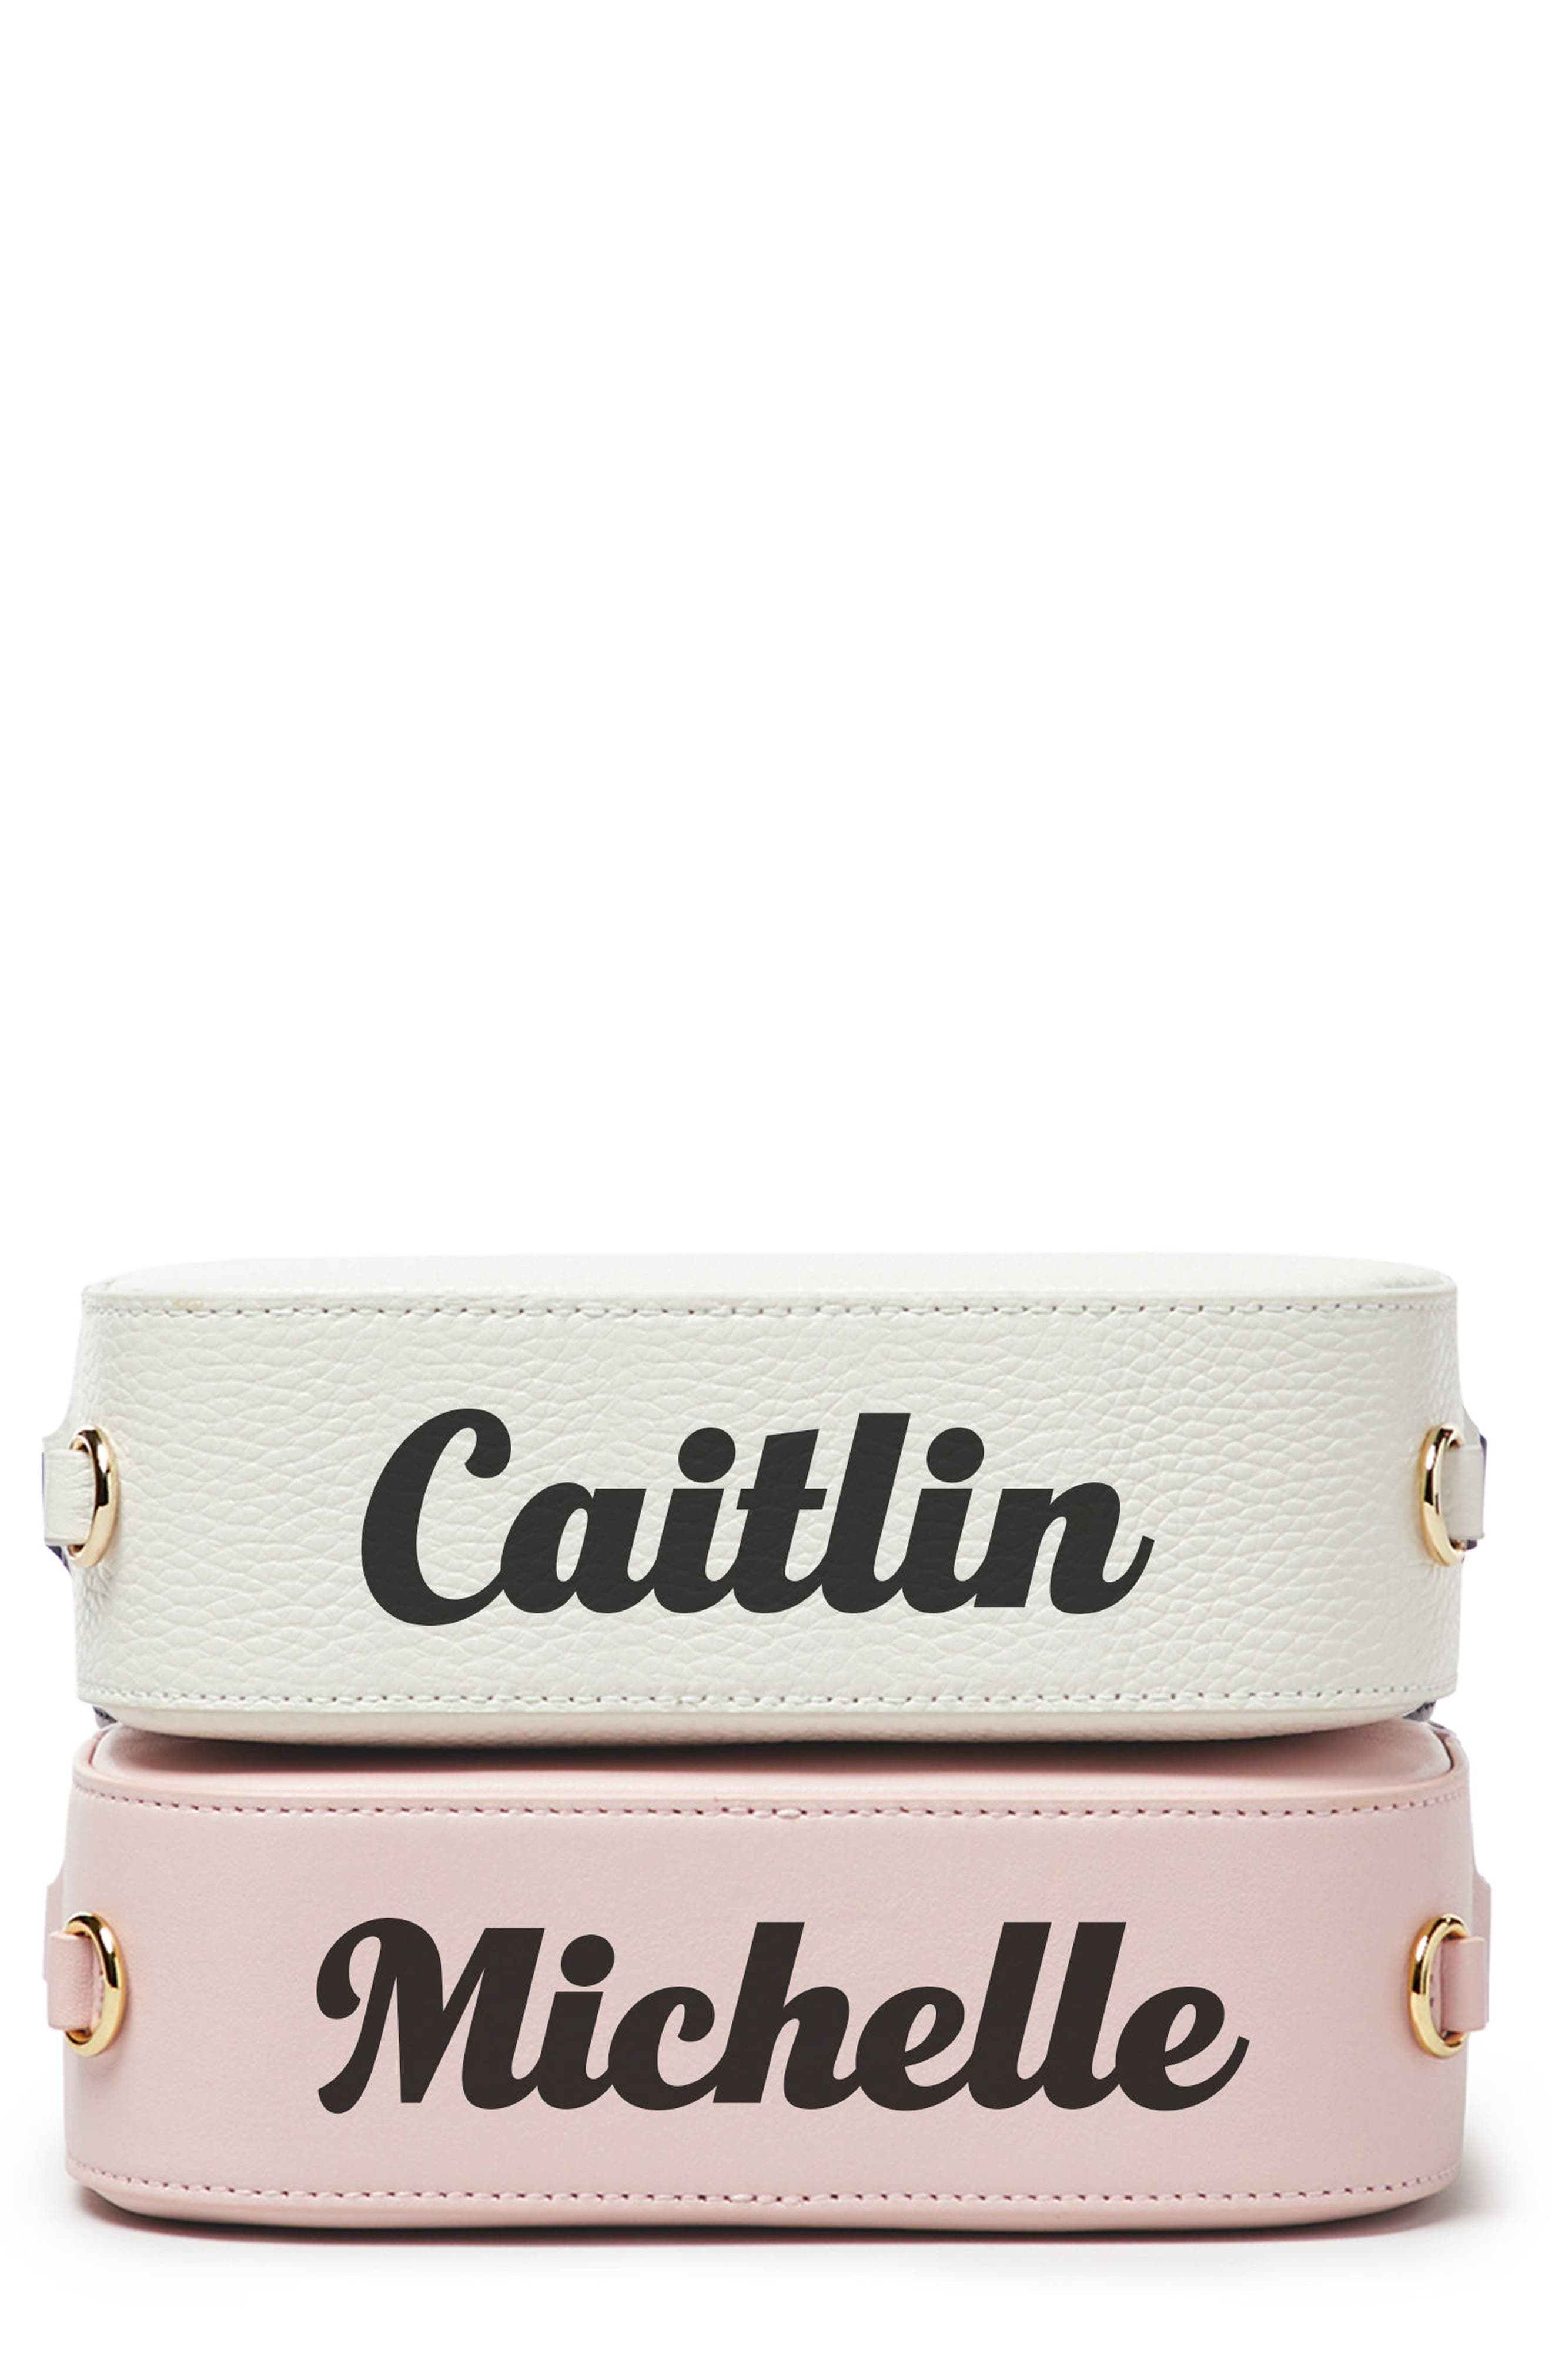 Alternate Image 1 Selected - Pop & Suki Personalized Leather Camera Bag (Nordstrom Exclusive)